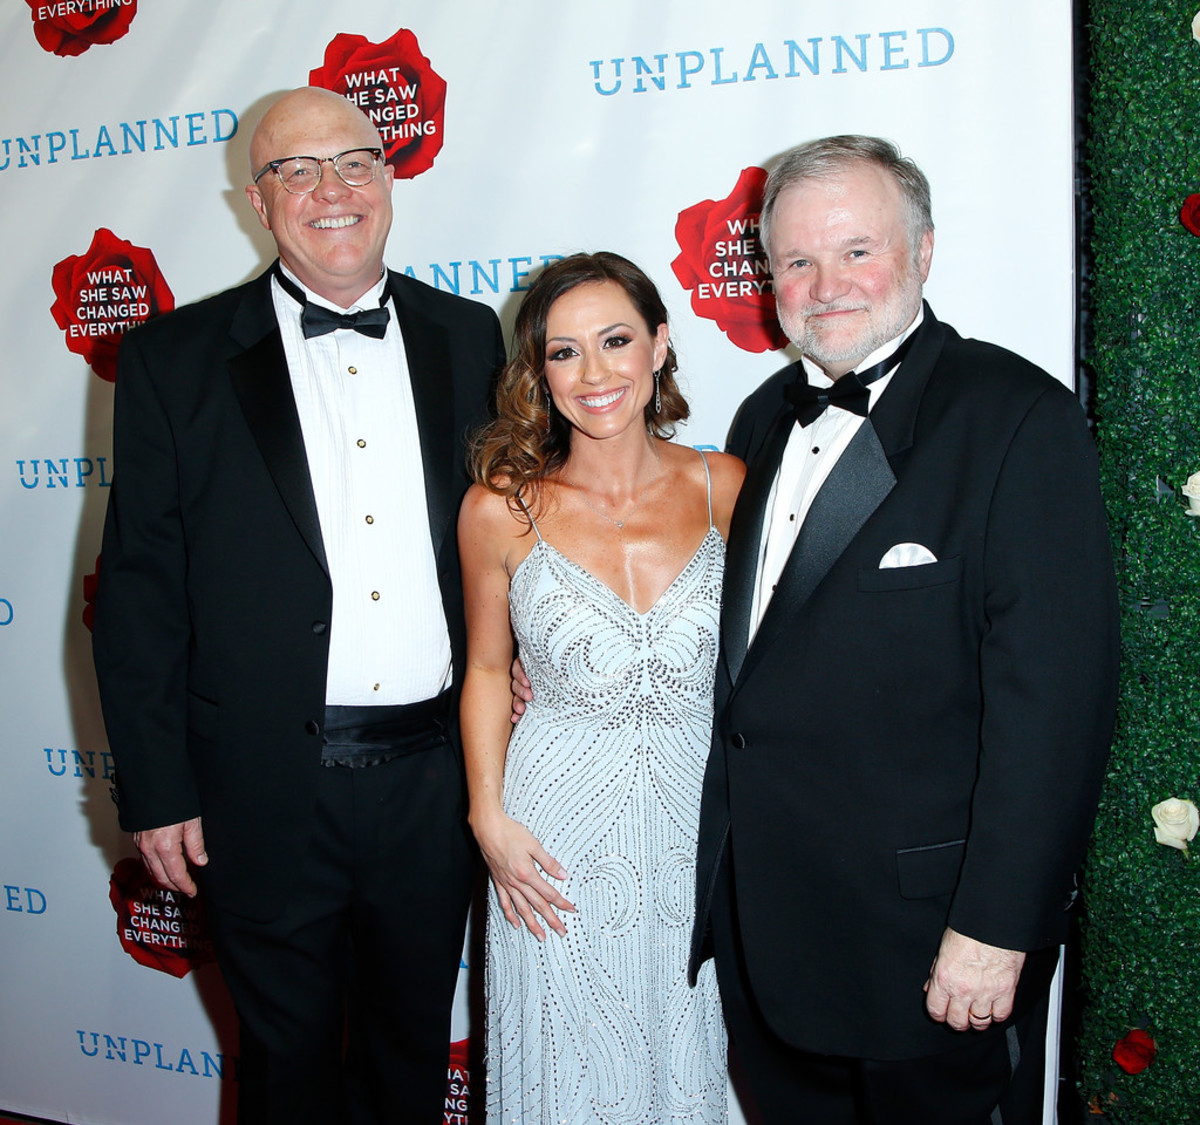 Writers/Directors Chuck Solomon and Cary Konzelman with actress Ashely Bratcher.